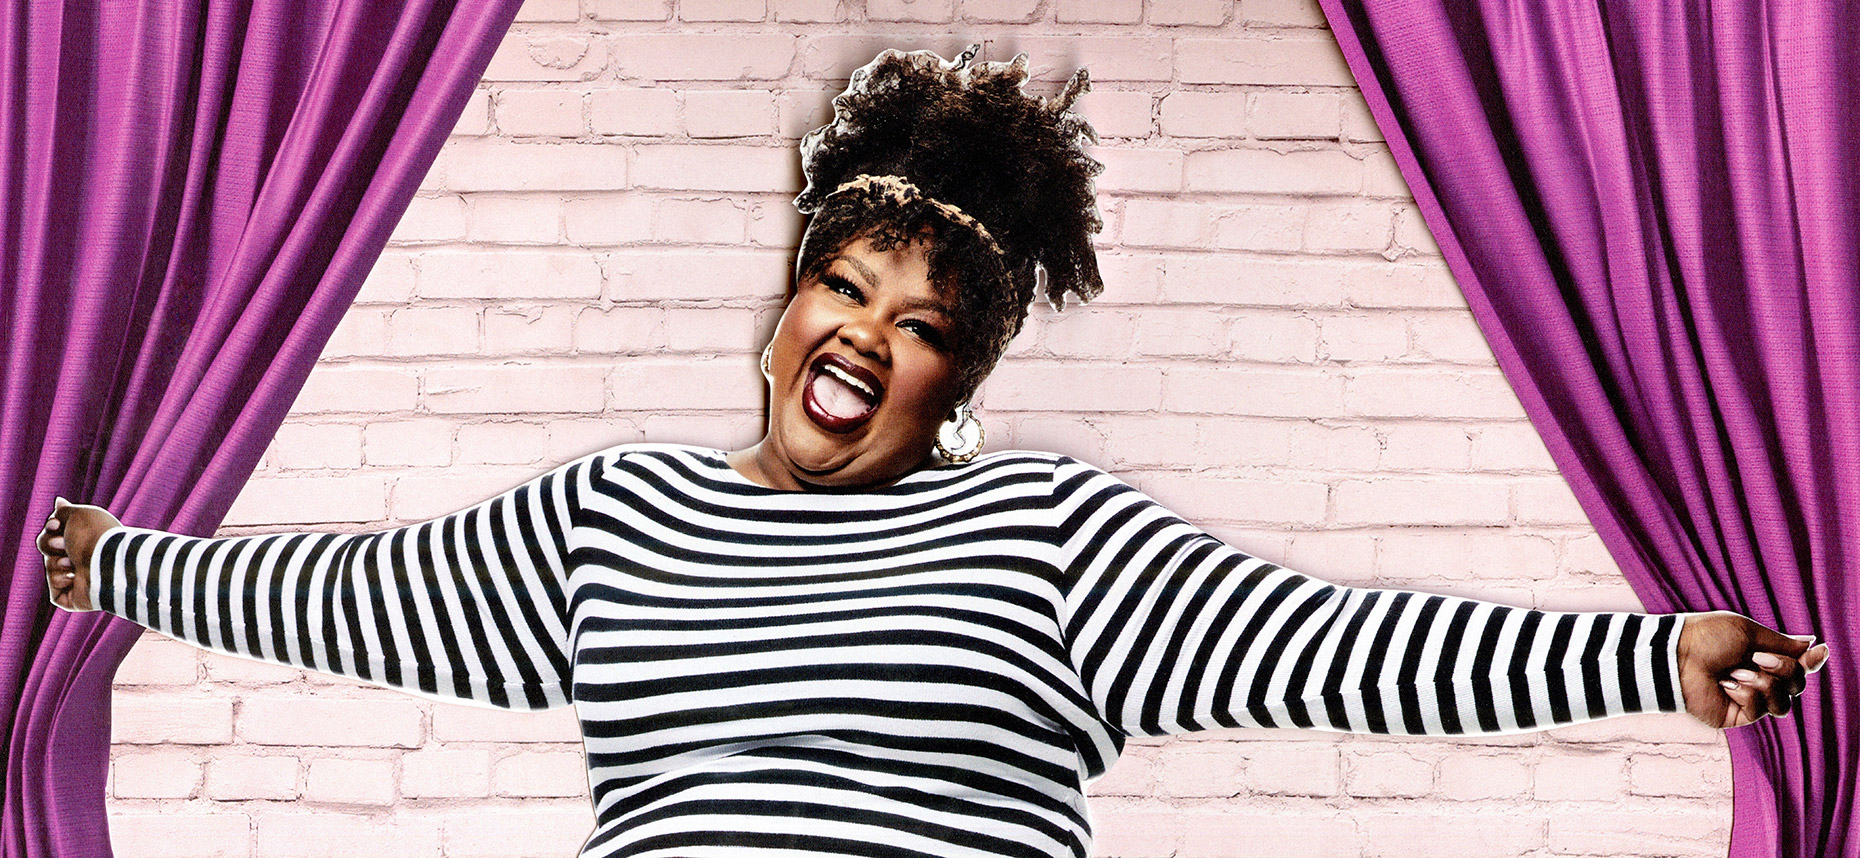 NicoleByer_EDIT_Header